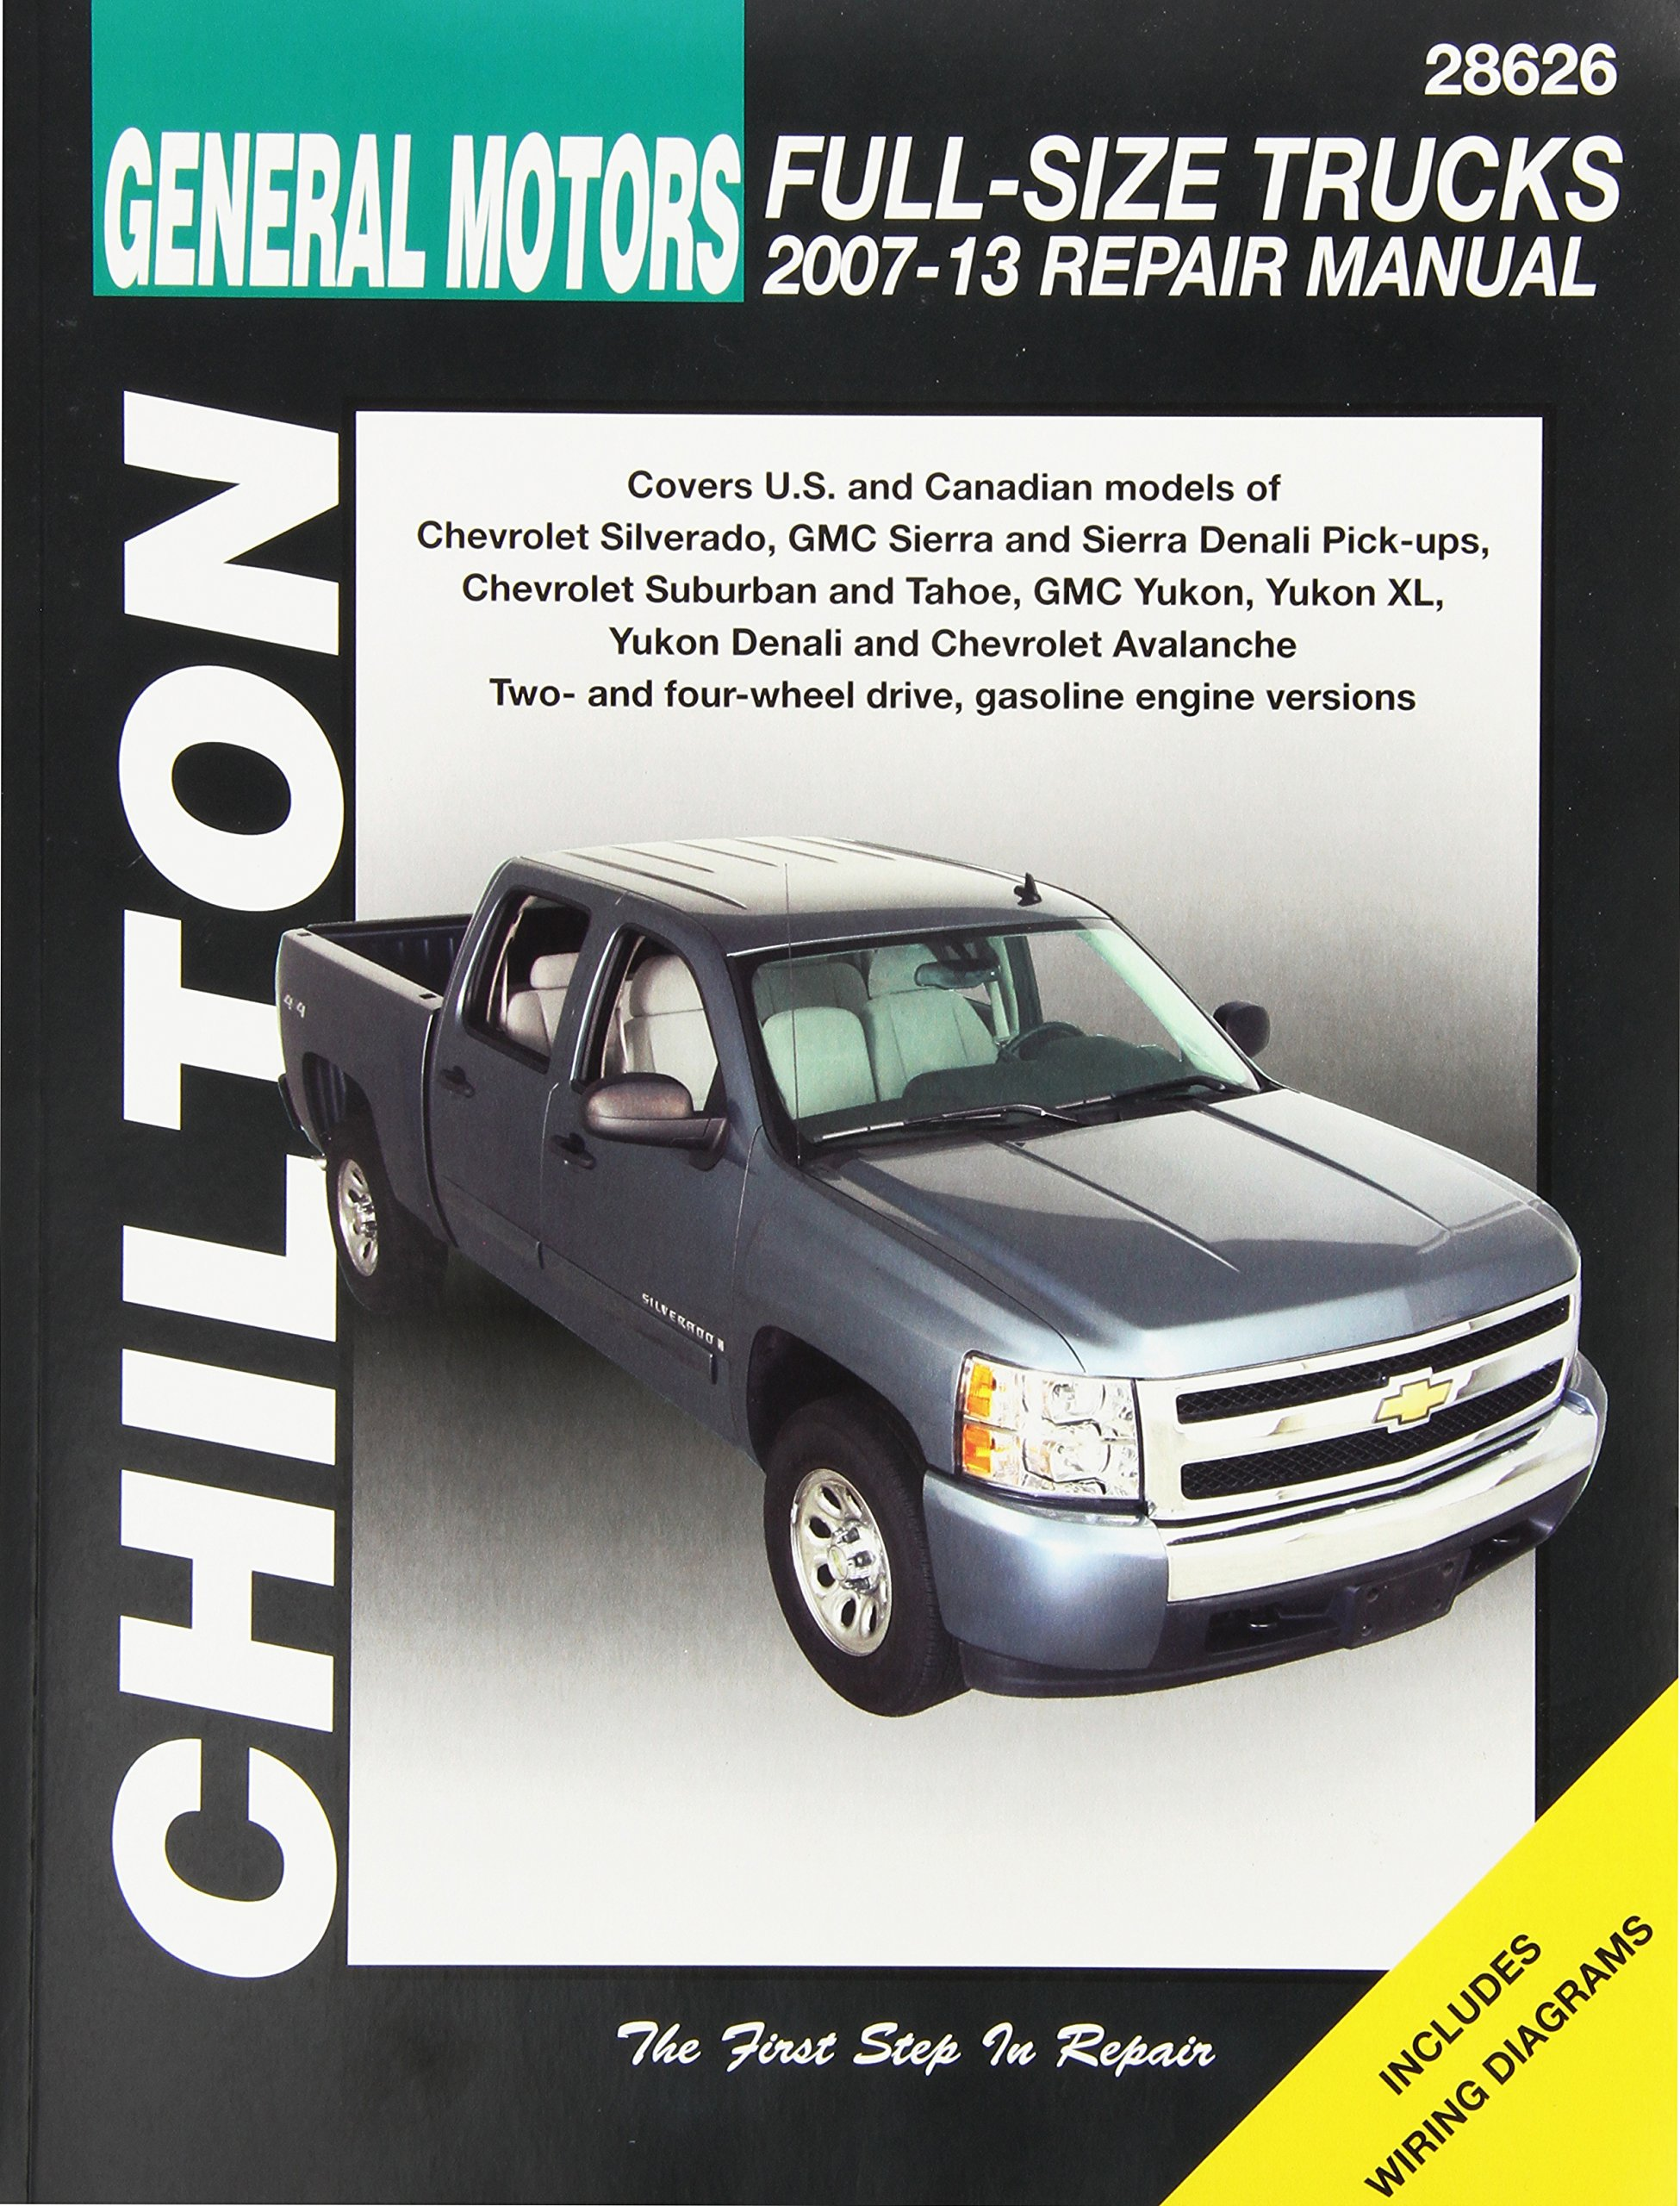 chevrolet savana service manual ebook rh chevrolet savana service manual ebook mollysm 1998 Cavalier 1997 Cavalier